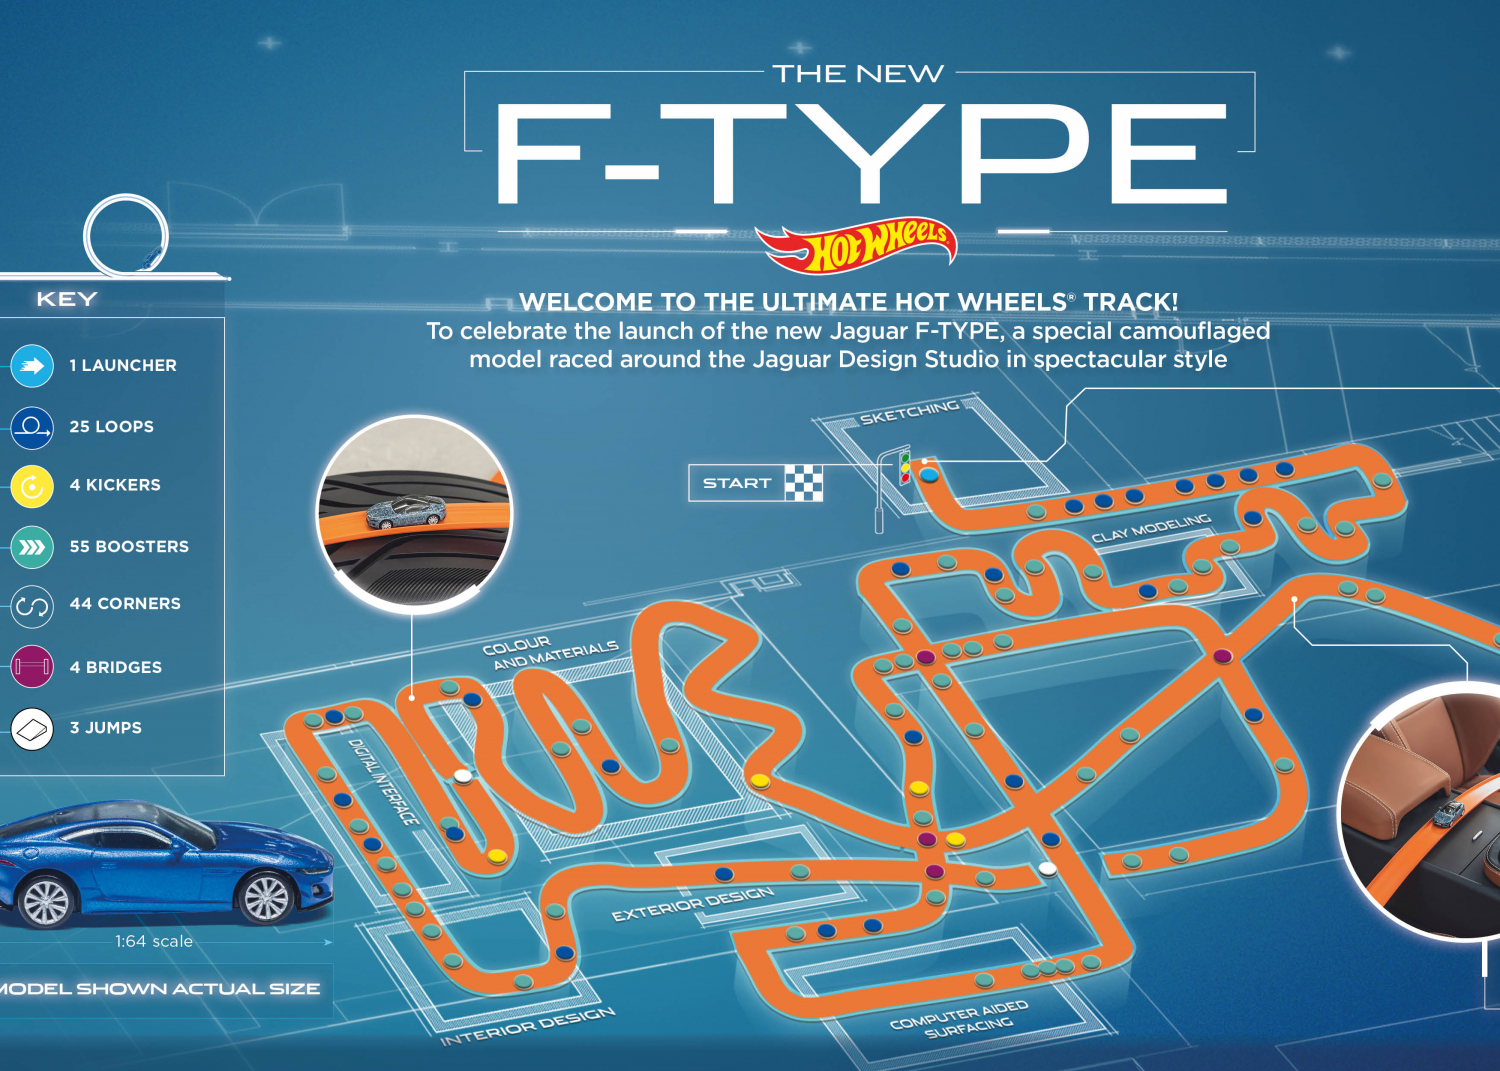 New Jaguar F-type Makes World Premiere with a Little Help from Hot Wheels® - Image 2